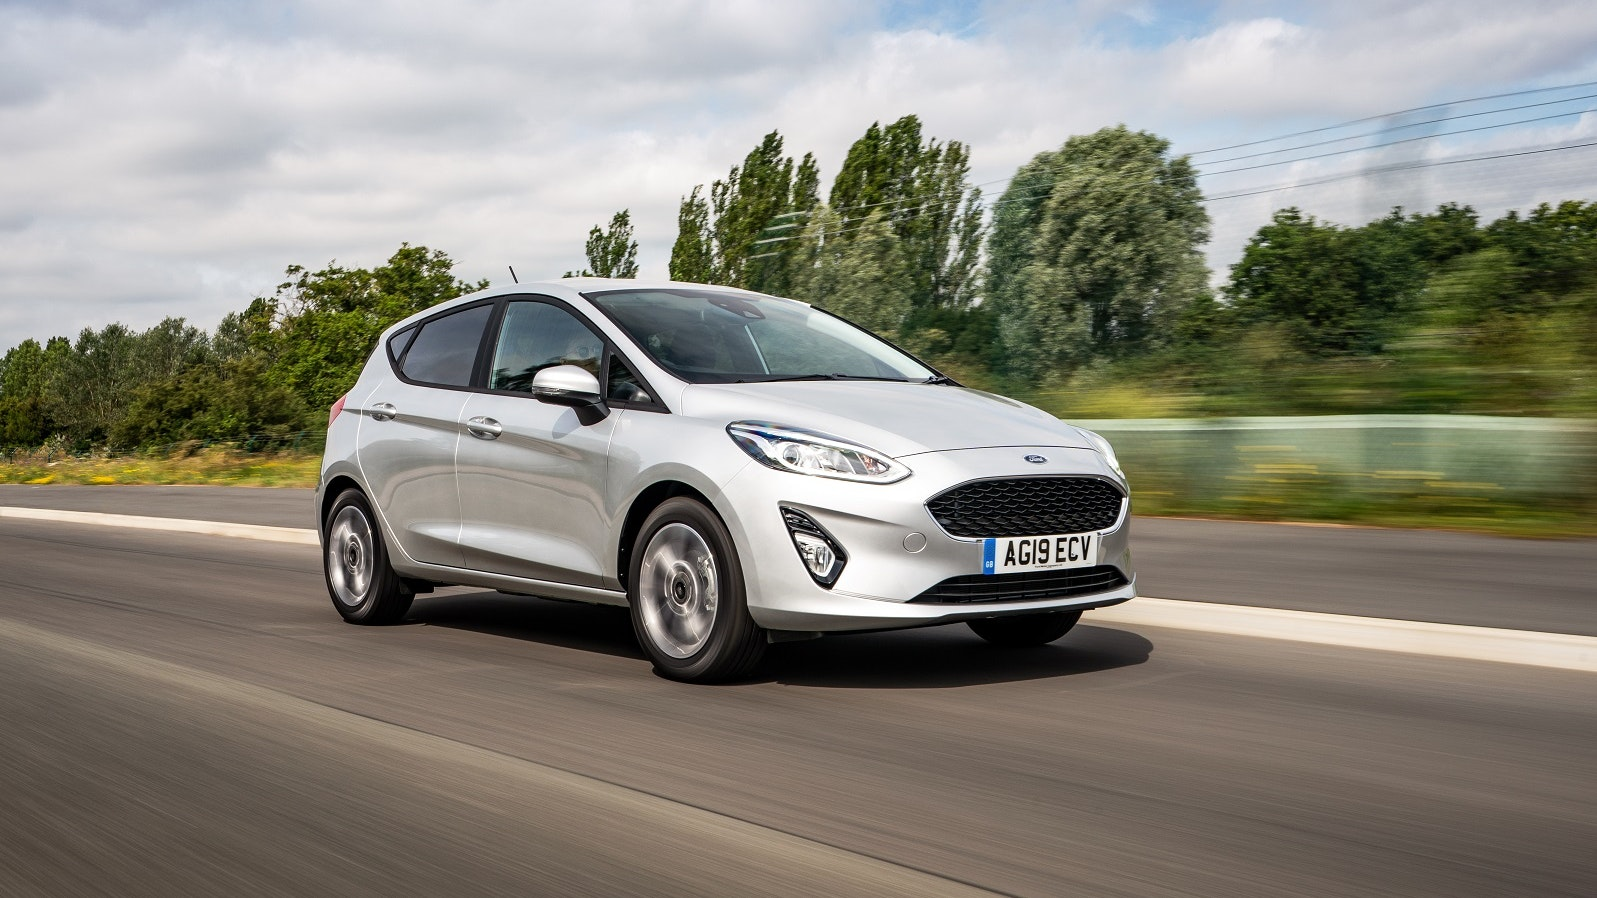 UK Drive: The Ford Fiesta Trend sets the bar high for entry-level superminis